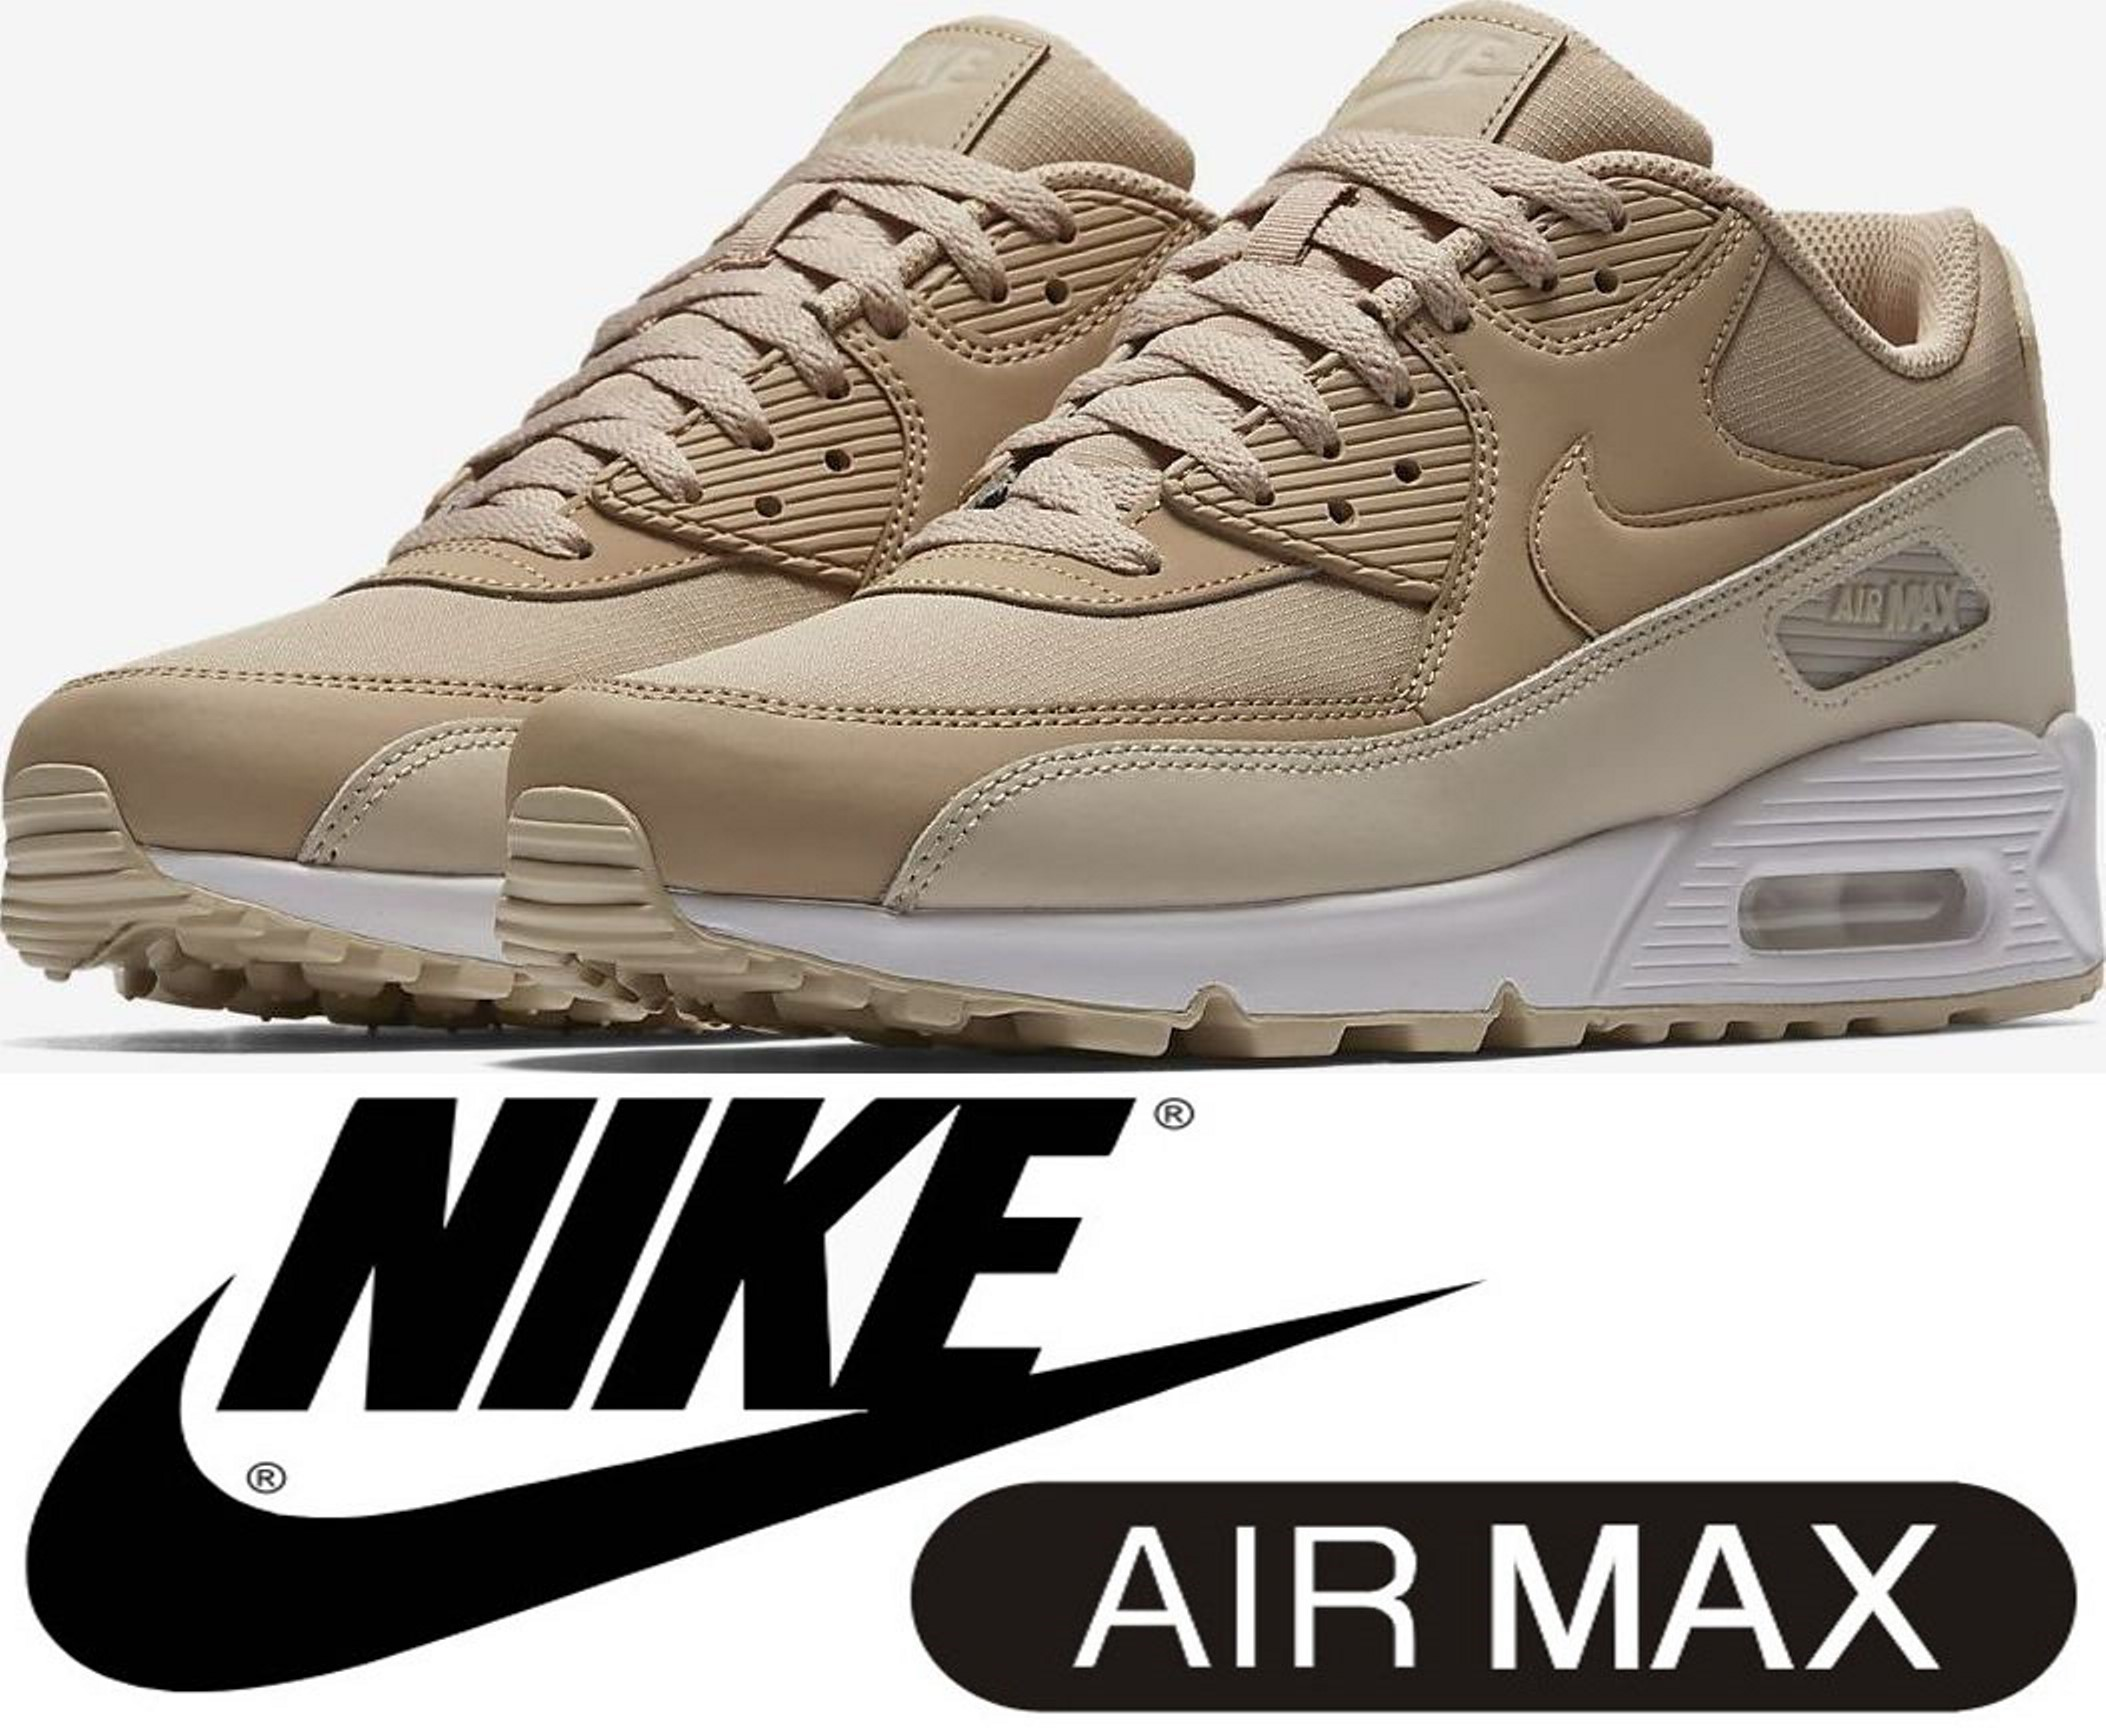 Tenisky zn. NIKE AIR MAX 90 ESSENTIAL vel. 45,5